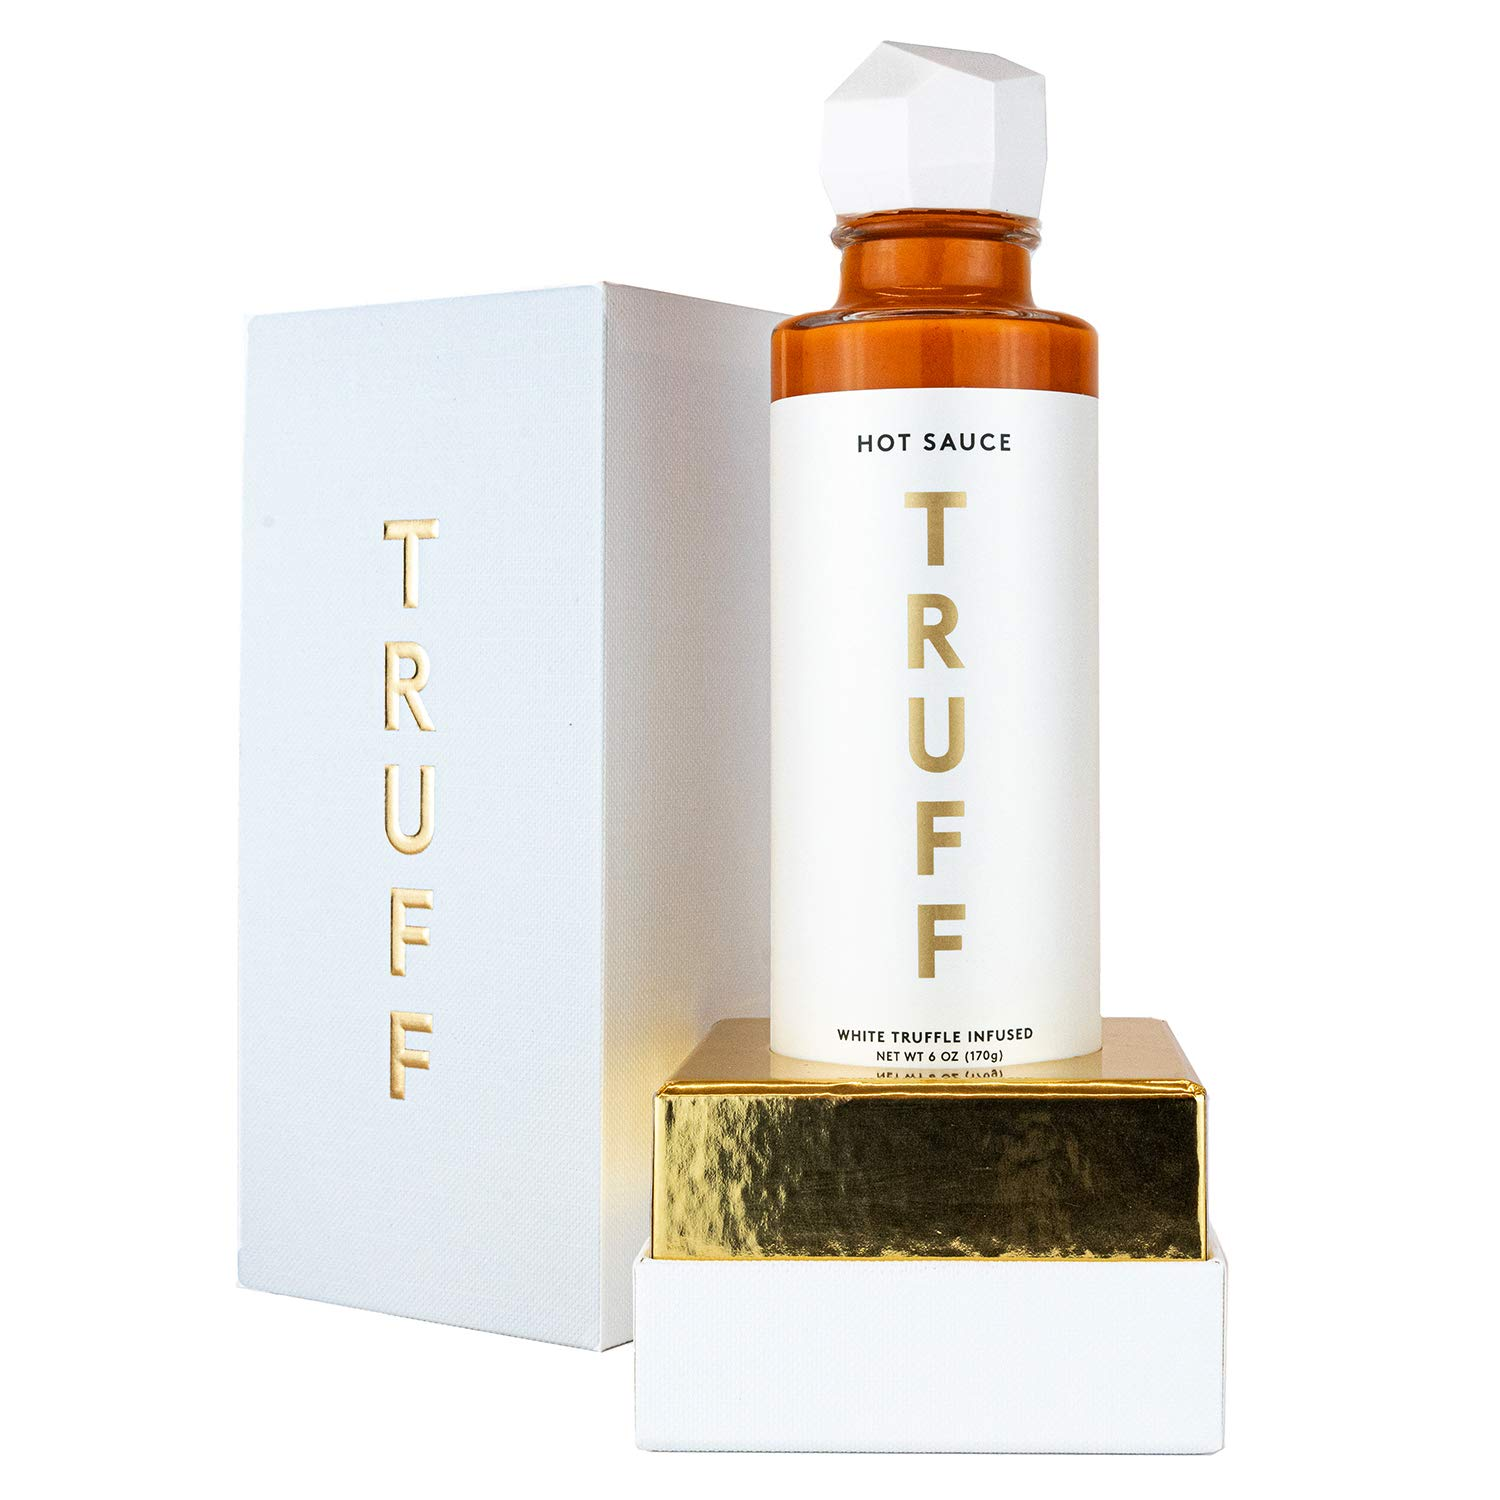 TRUFF White Truffle Hot Sauce, $34 @amazon.com